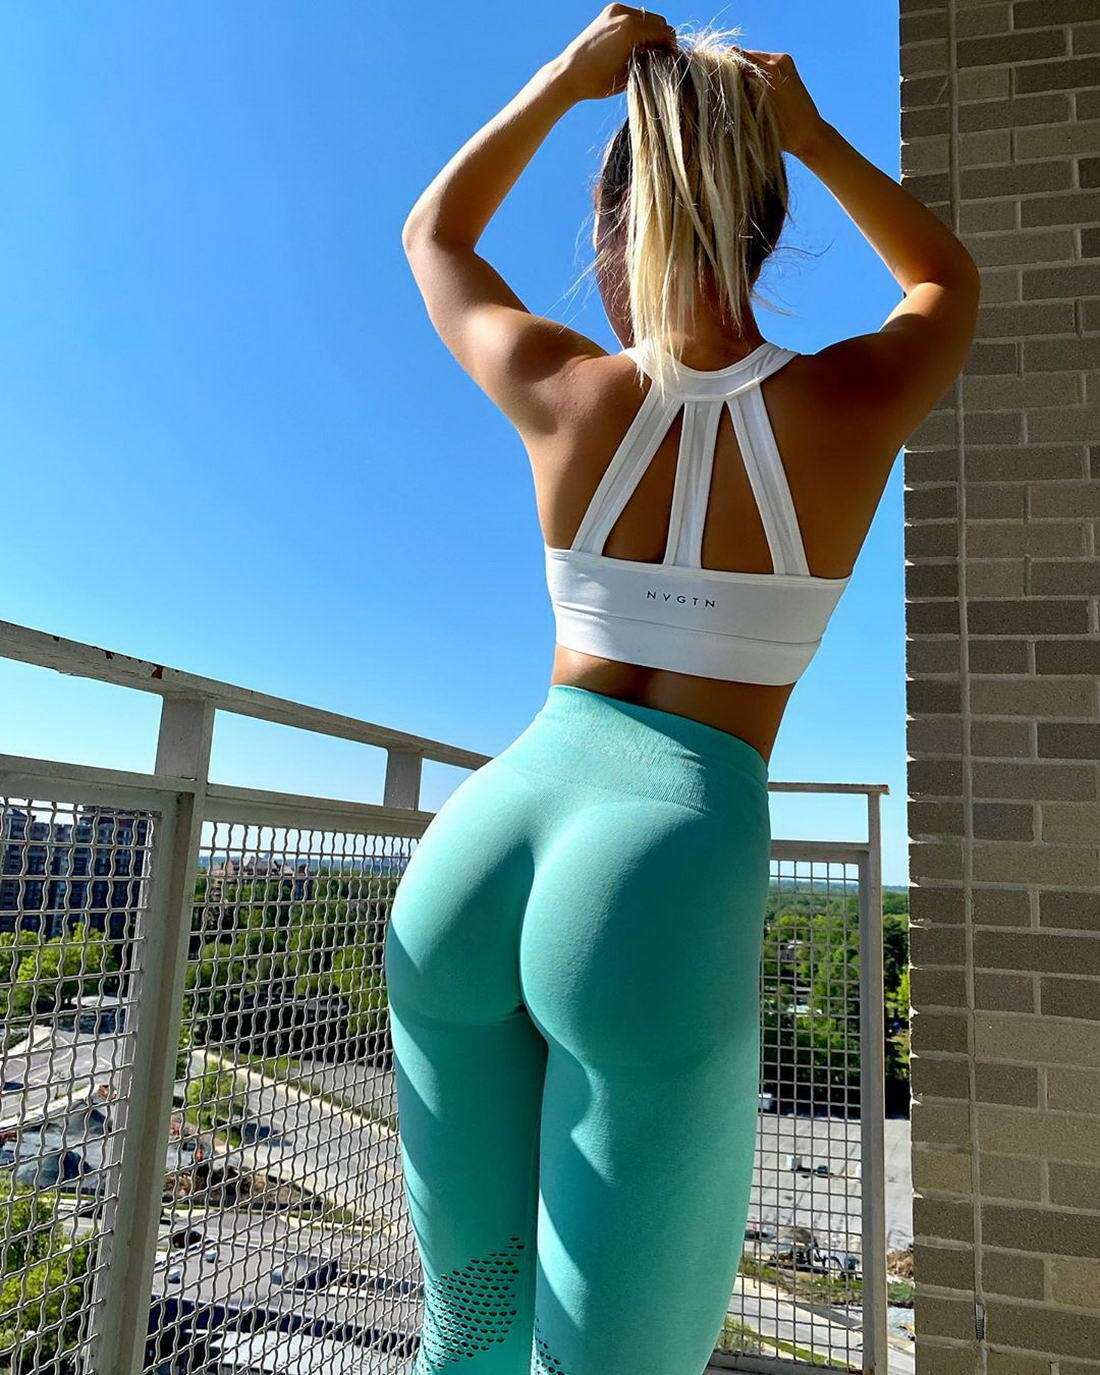 Hot Girls In Yoga Pants (48 Photos) - Page 3 of 5 - The